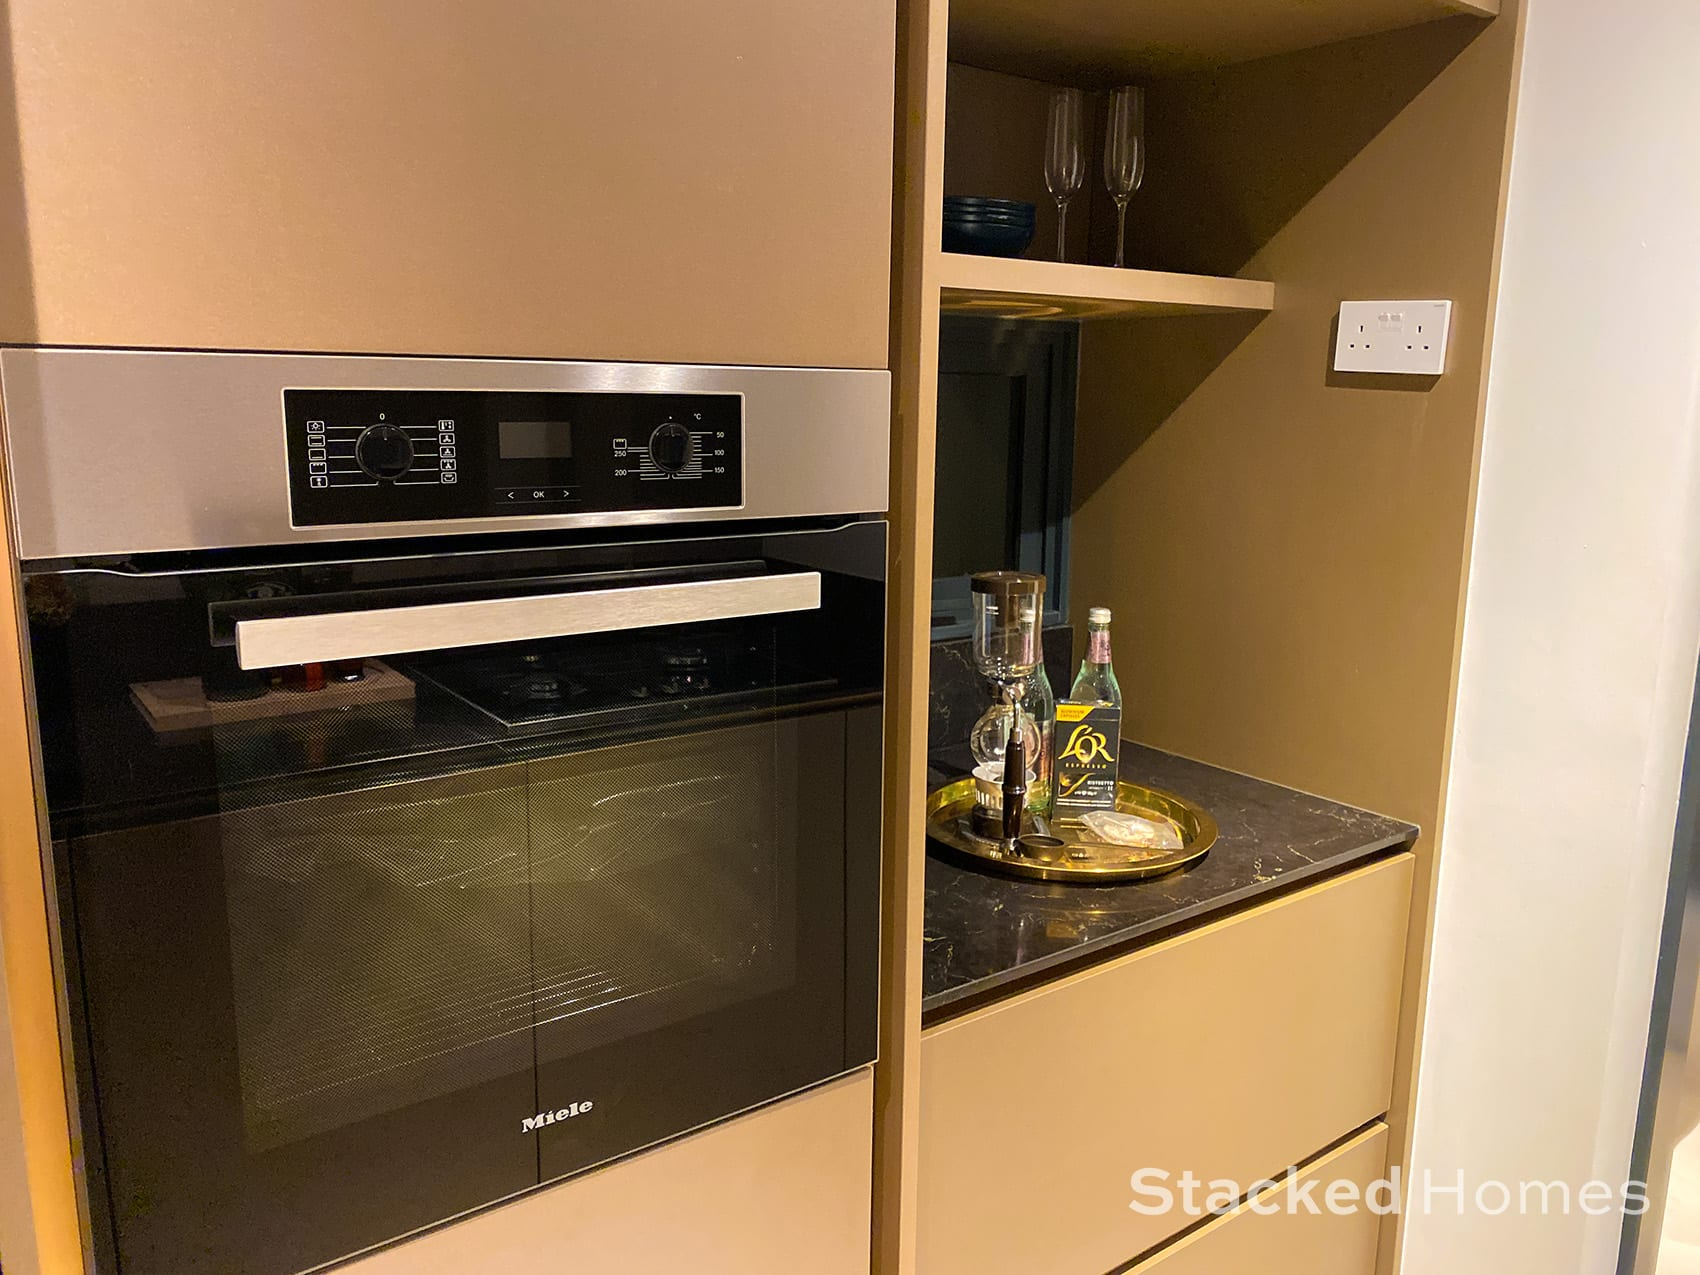 royalgreen 3 bedroom kitchen oven